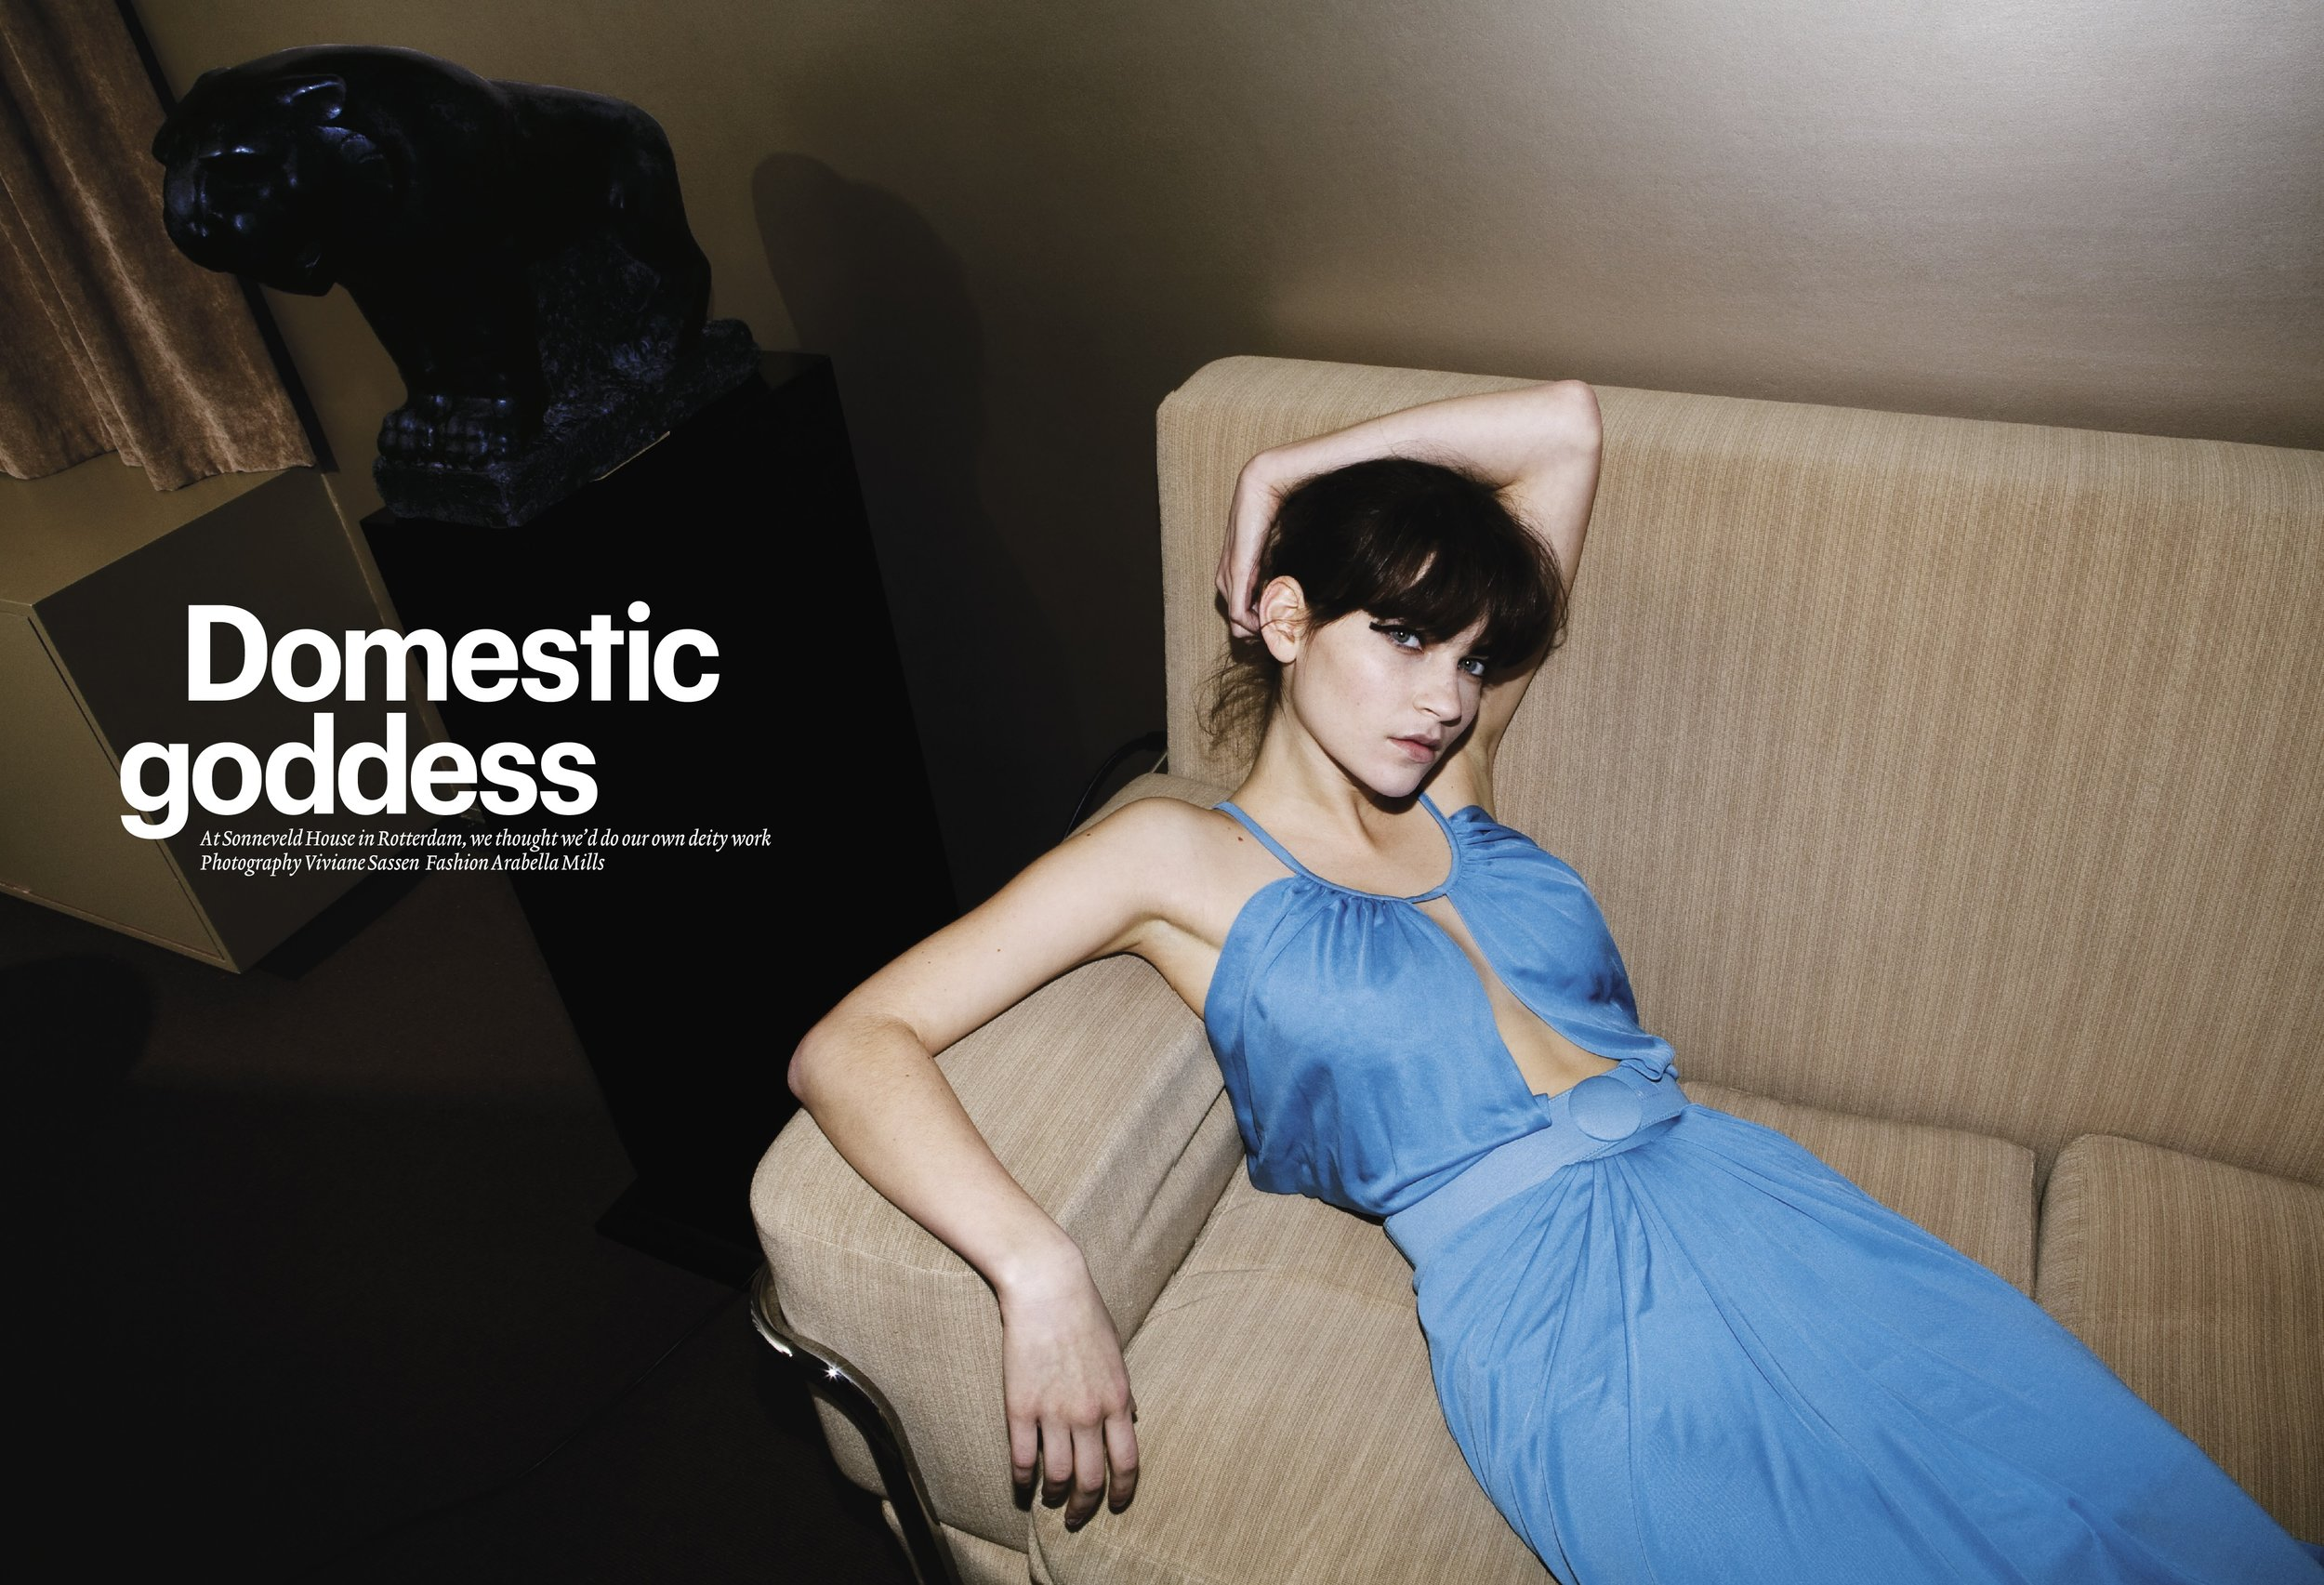 WALLPAPER - Viviane Sassen - Domestic goddess 1